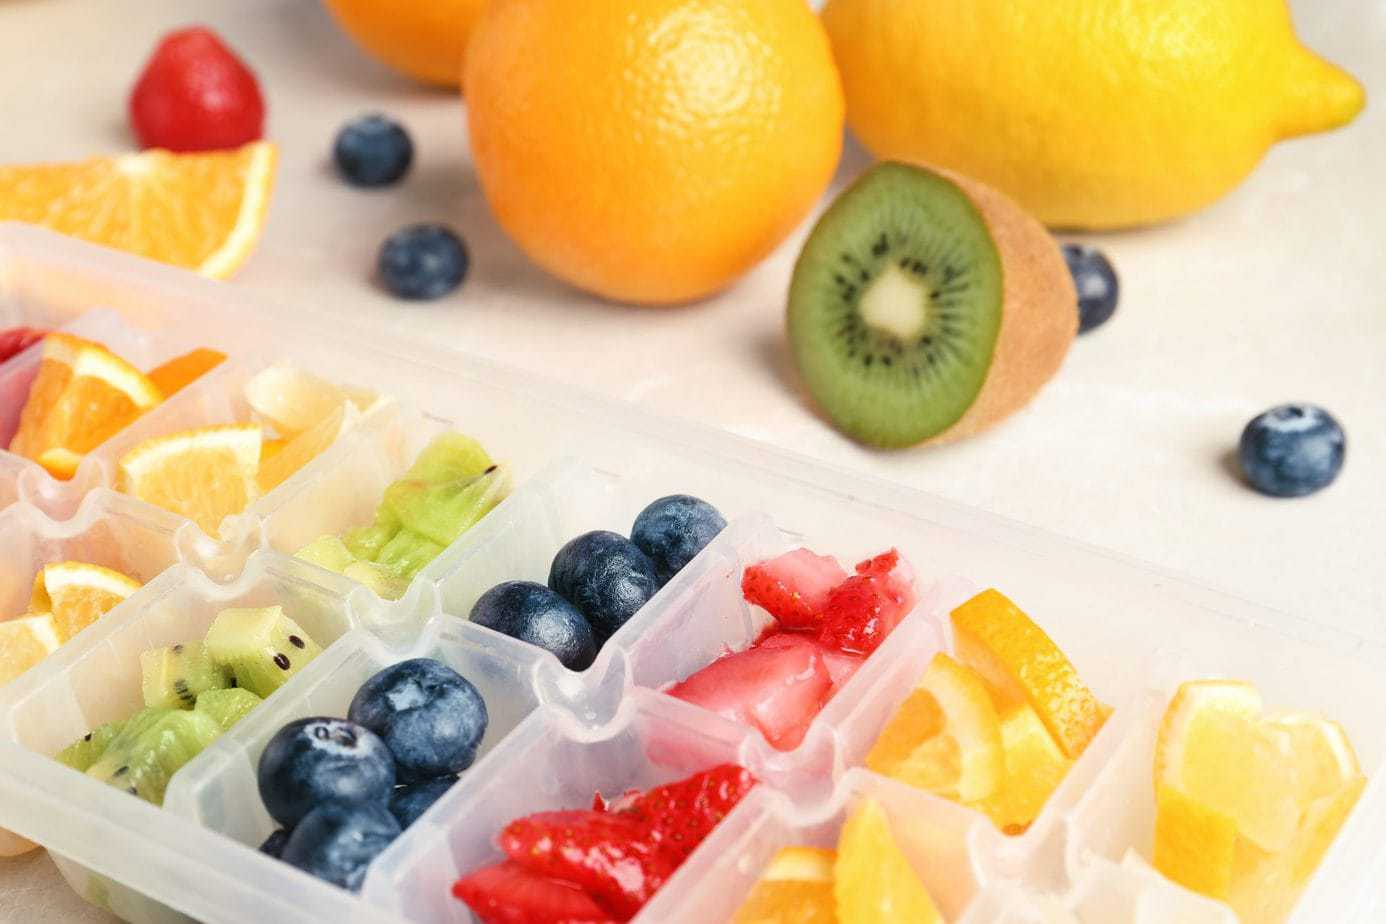 Ice cube tray with different fruits and berries on table